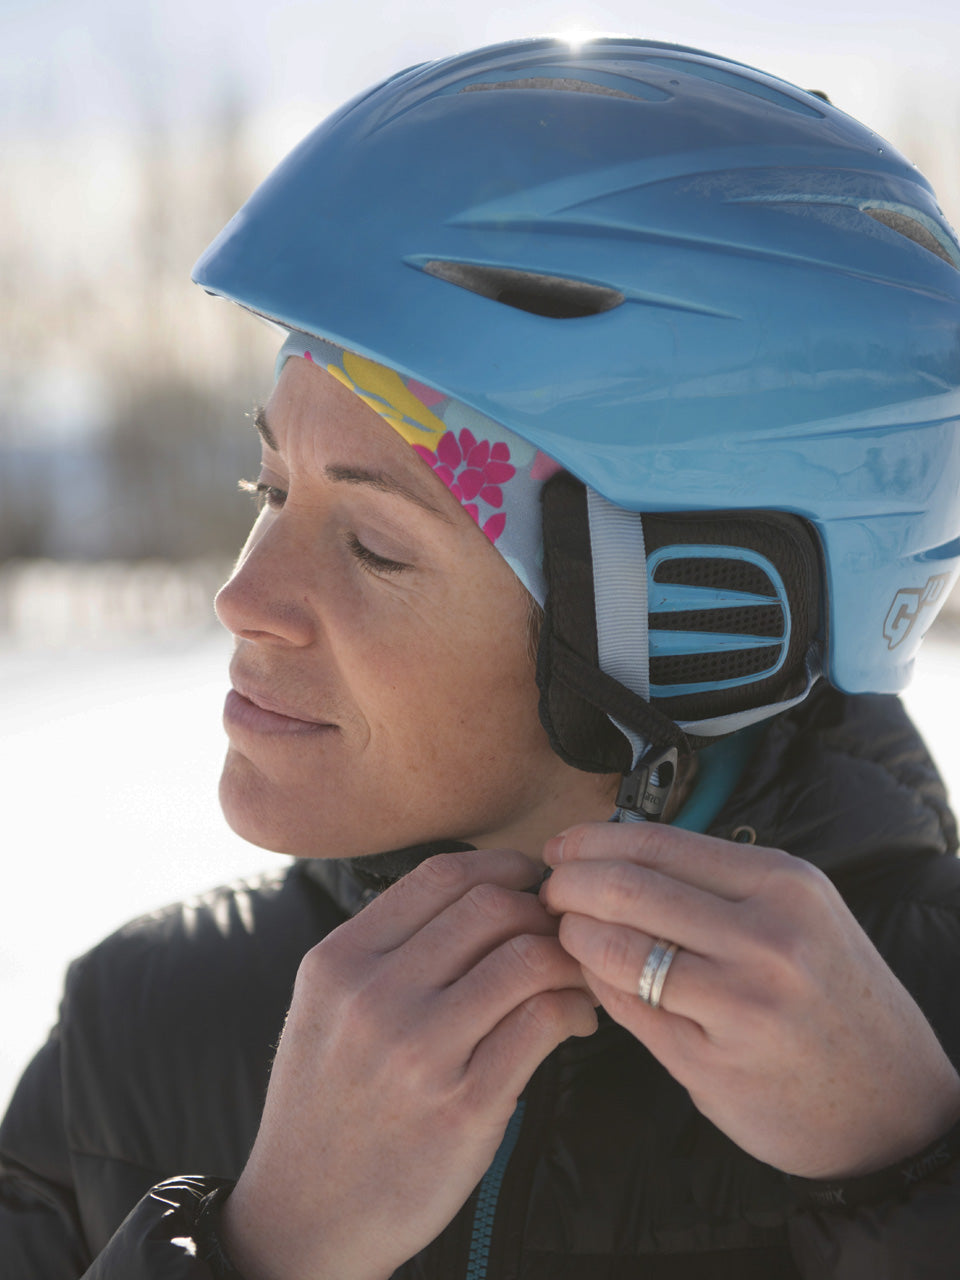 a woman wearing a ski helmet over a floral patterned winter hat